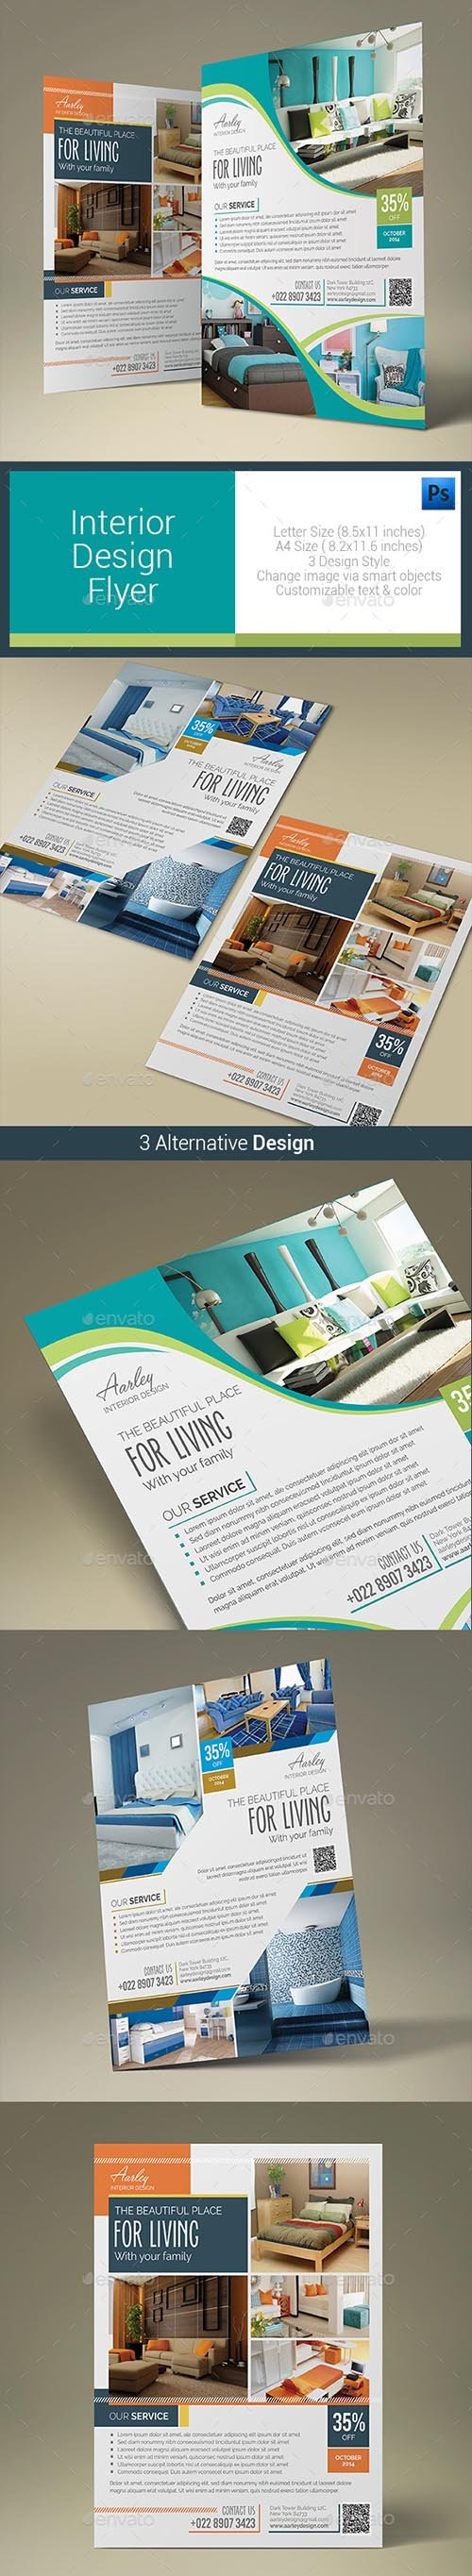 Interior Design Flyer 10485606